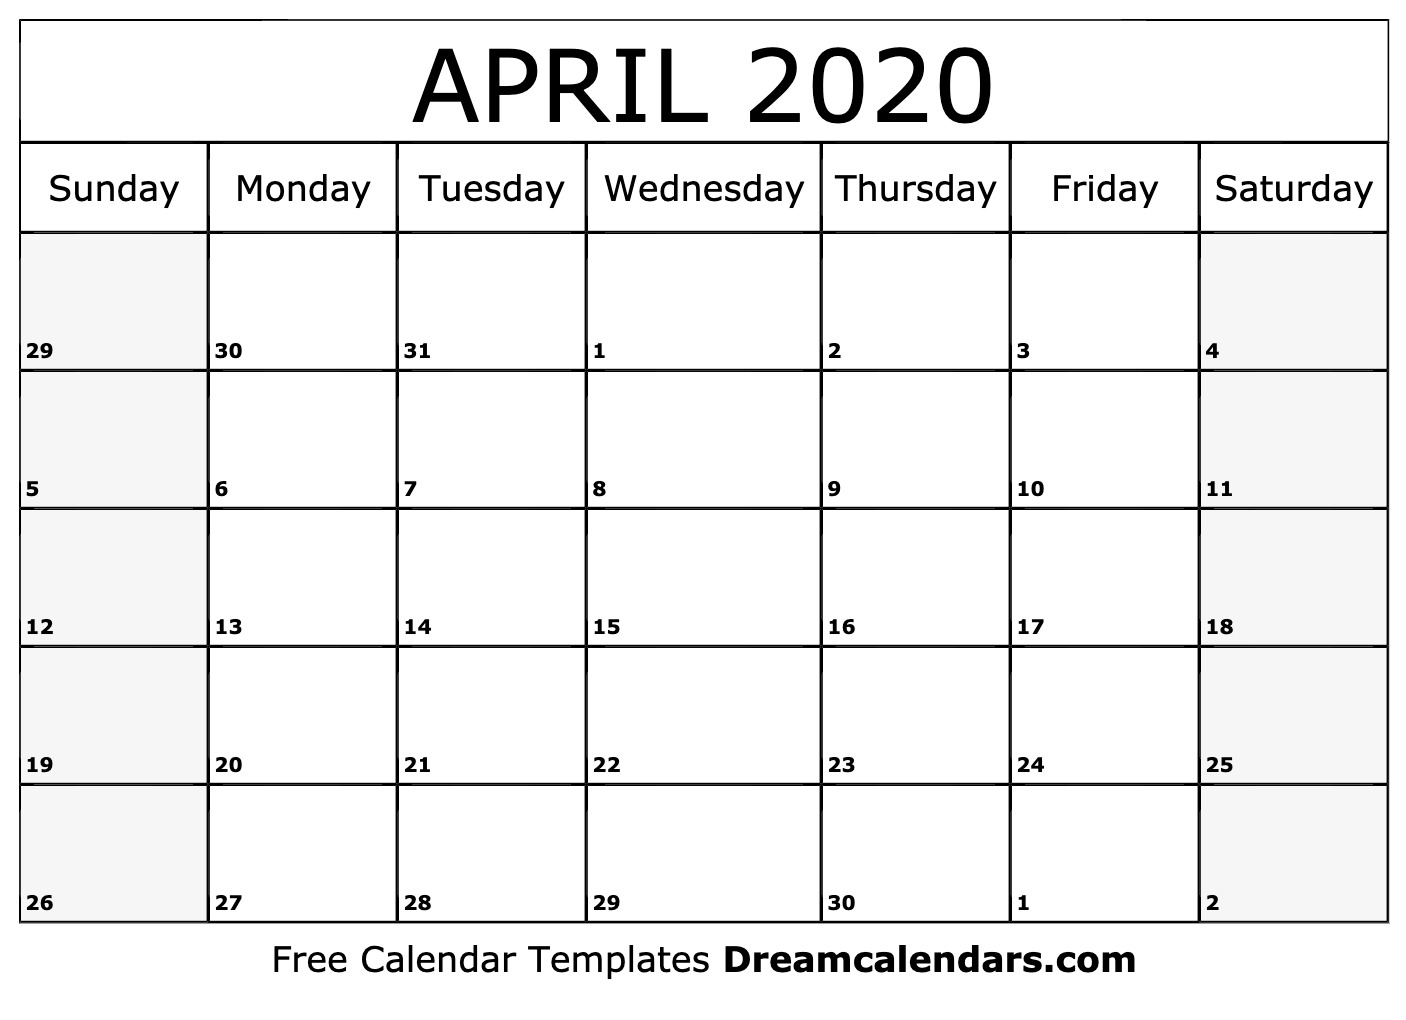 Calendar Template April 2020 Printable April 2020 Calendar